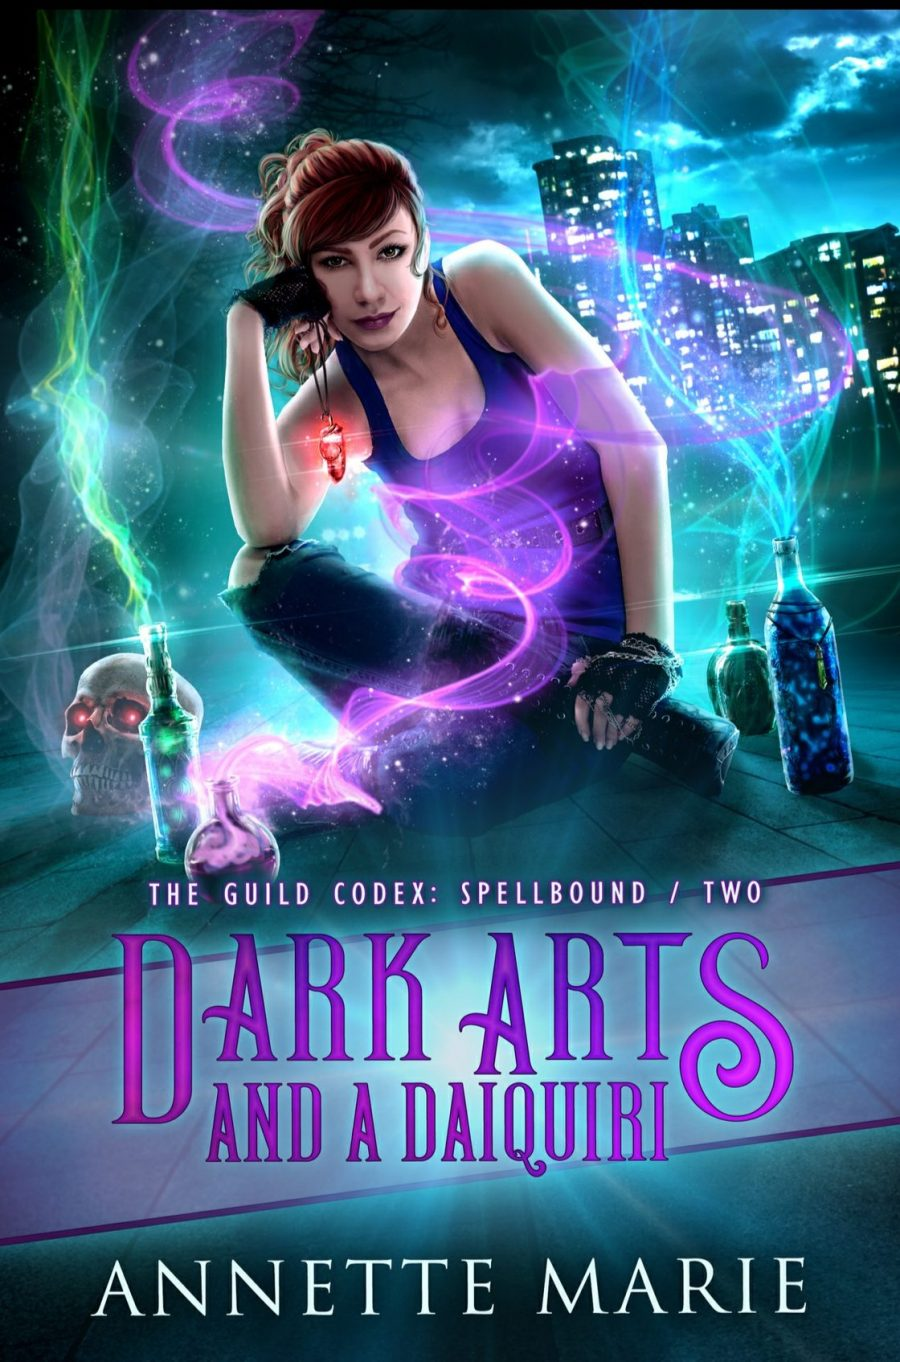 Dark Arts and a Daiquiri by Annette Marie – A Book Review